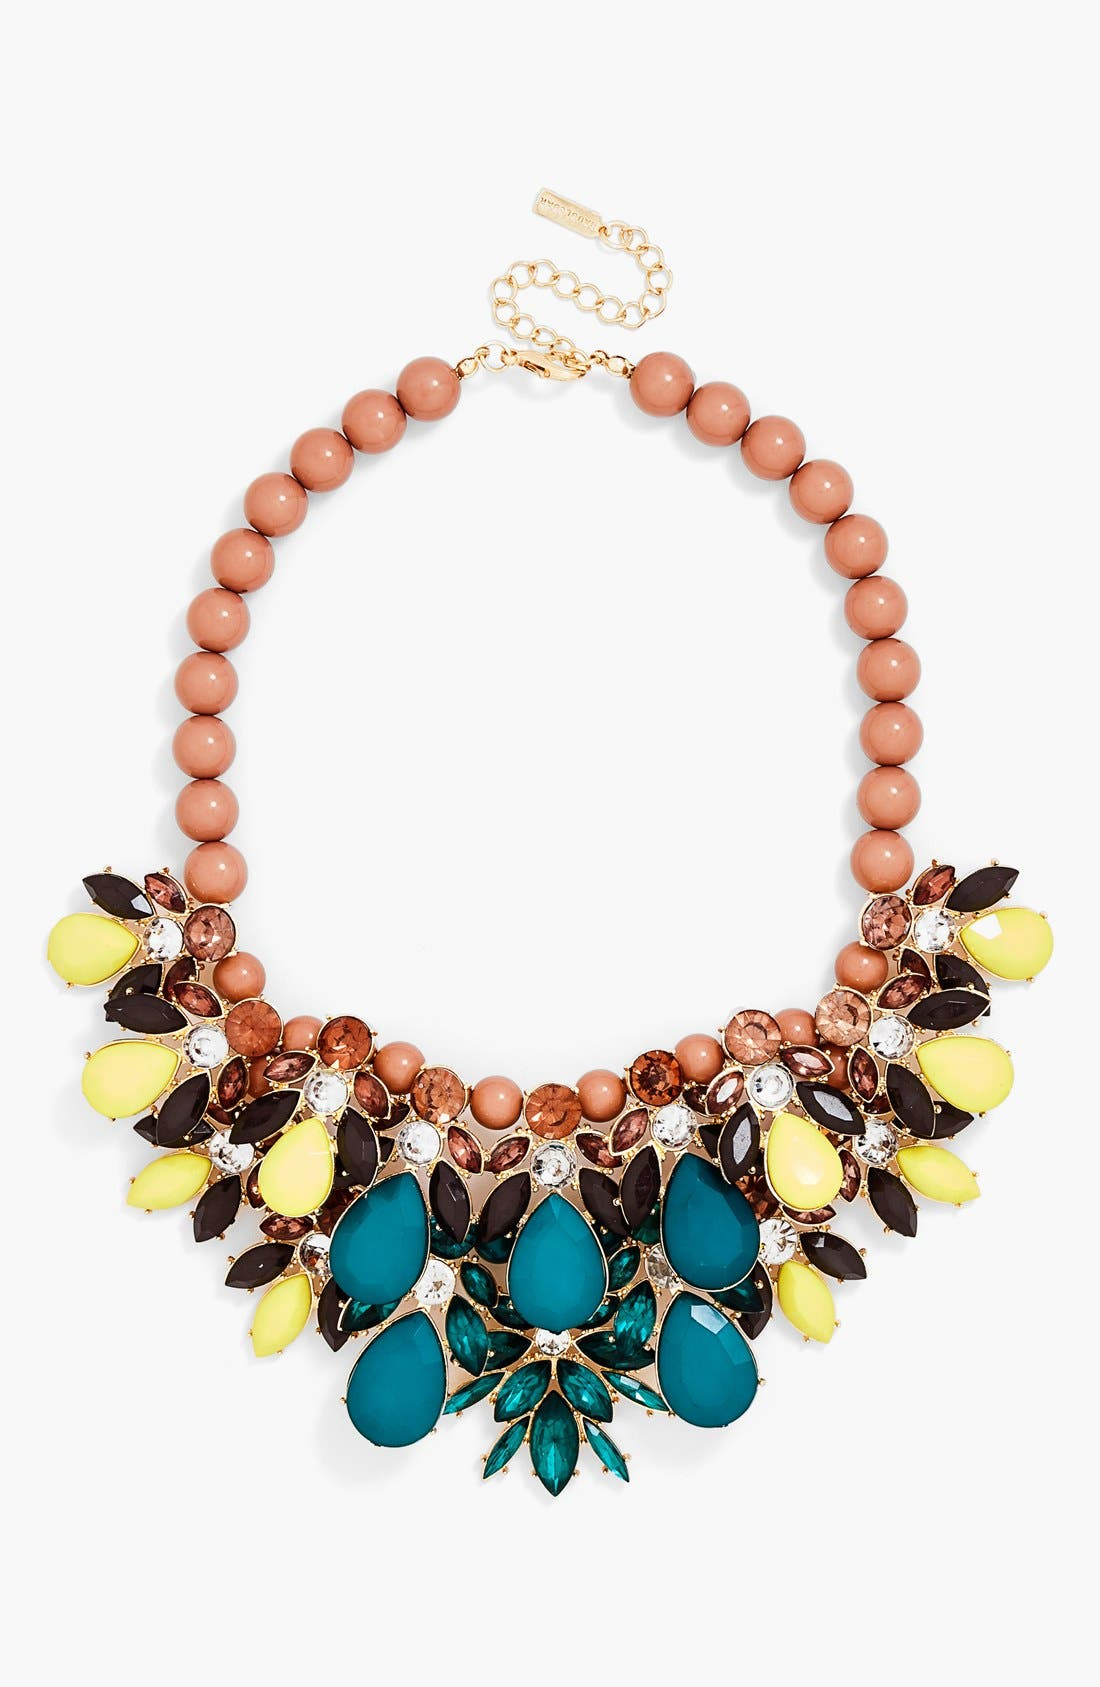 Alternate Image 1 Selected - BaubleBar Layered Stone Bib Necklace (Online Only)